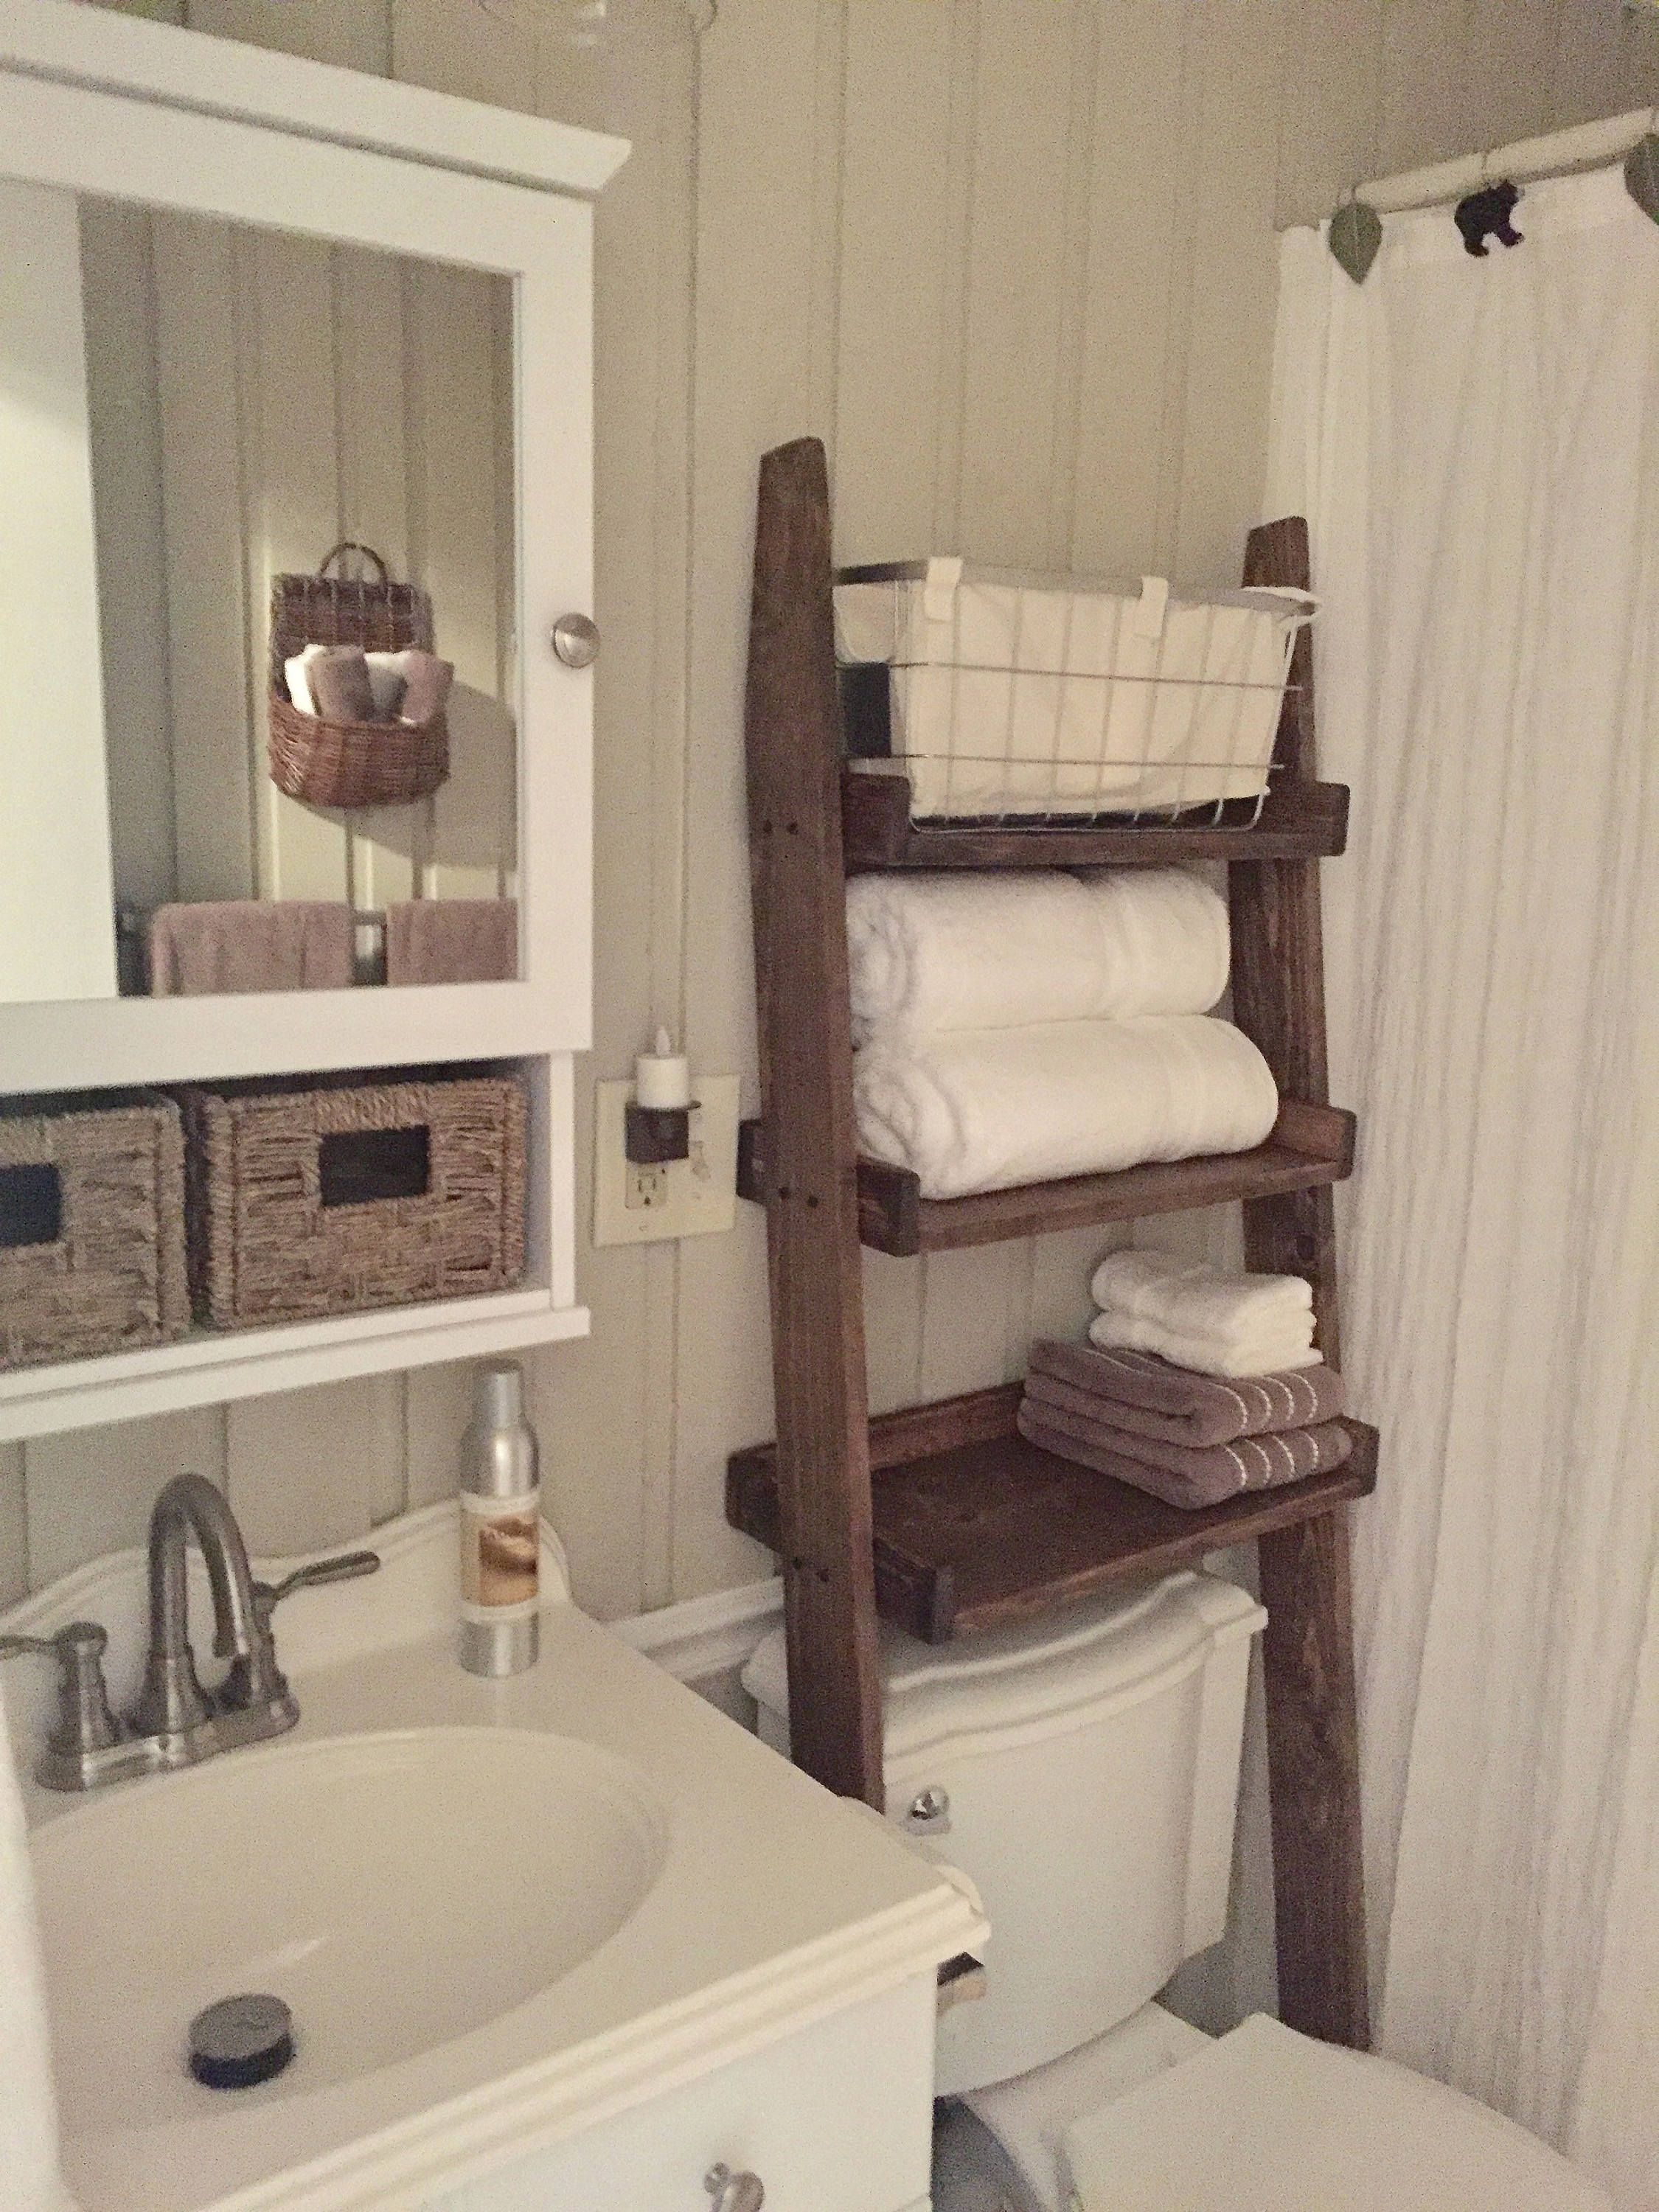 Bath ladder storage design make your bathroom more cute and cool - Over The Toilet Ladder Shelf Choose Finish Bathroom Storage Leaning Ladder Shelf Toilet Shelf Over Hamper Shelf Wood Shelf Ladder